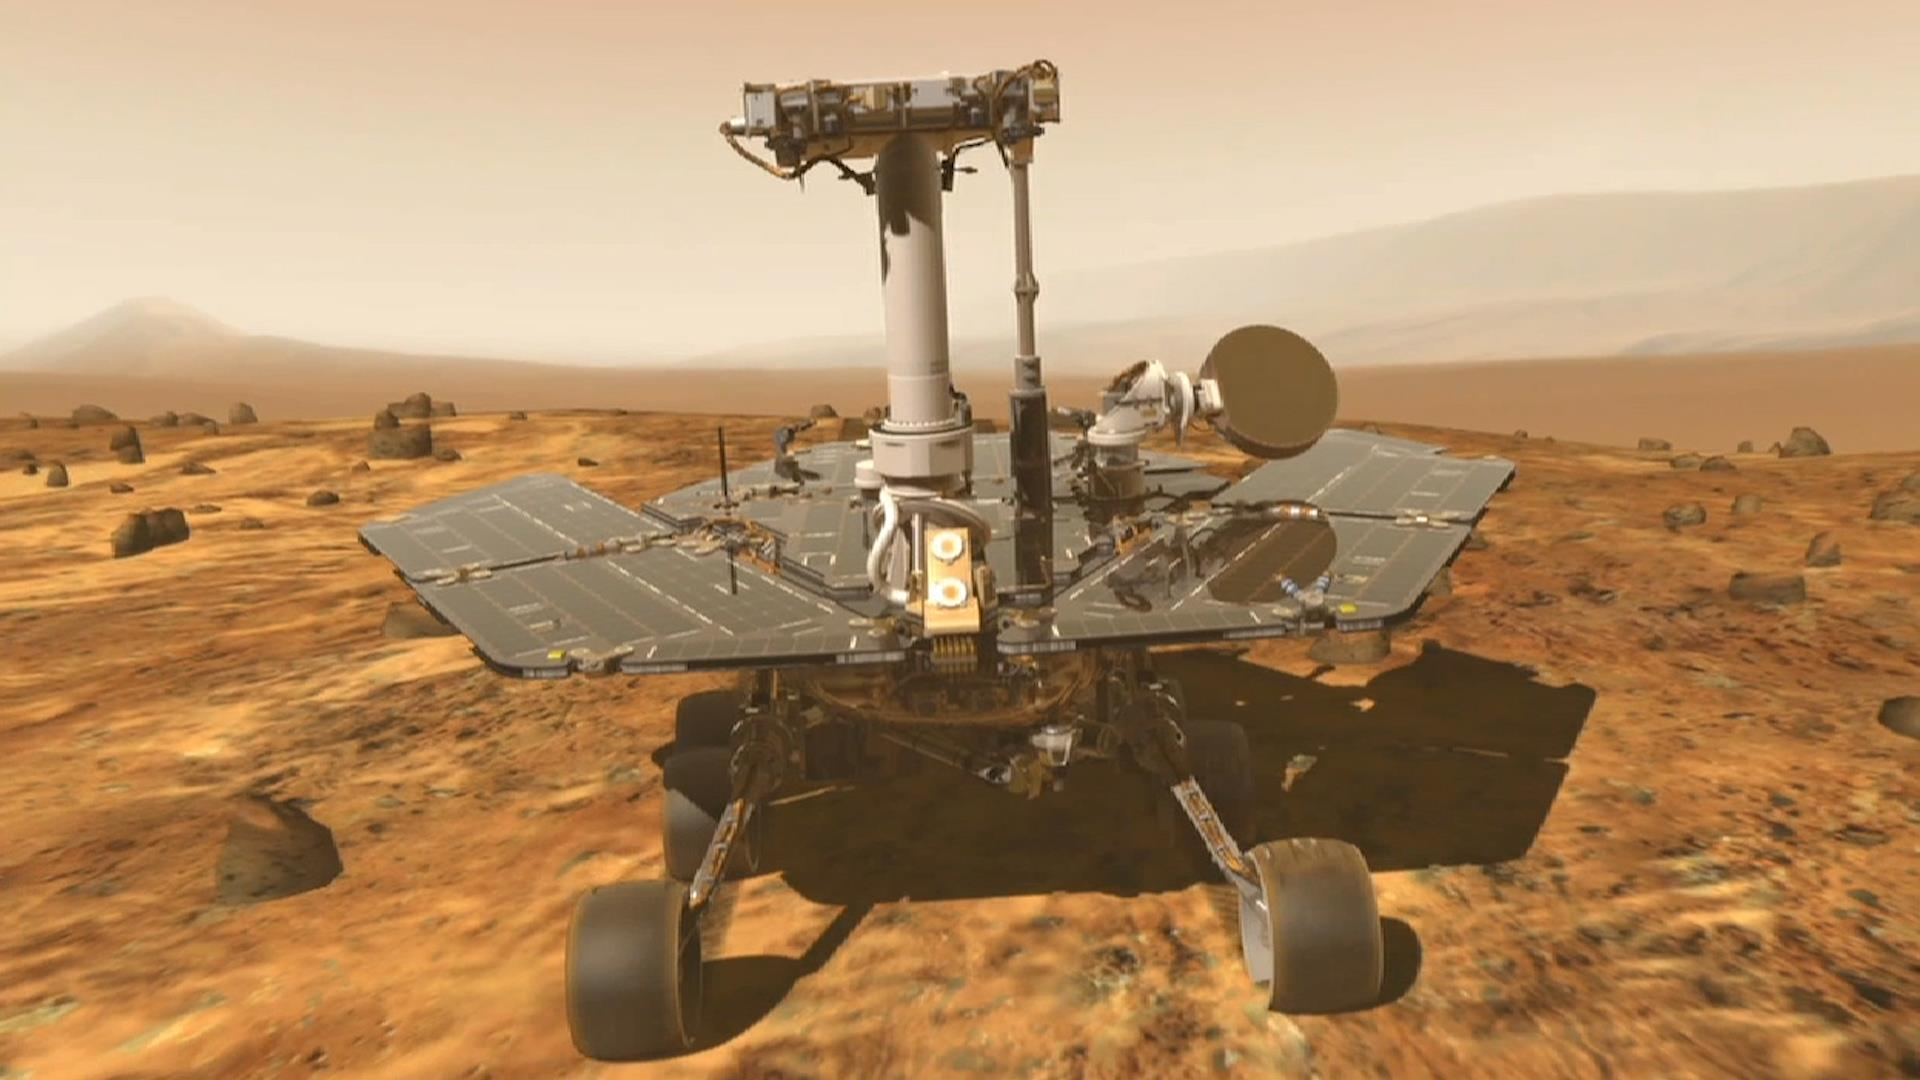 What we learned from Opportunity's grand journey across Mars